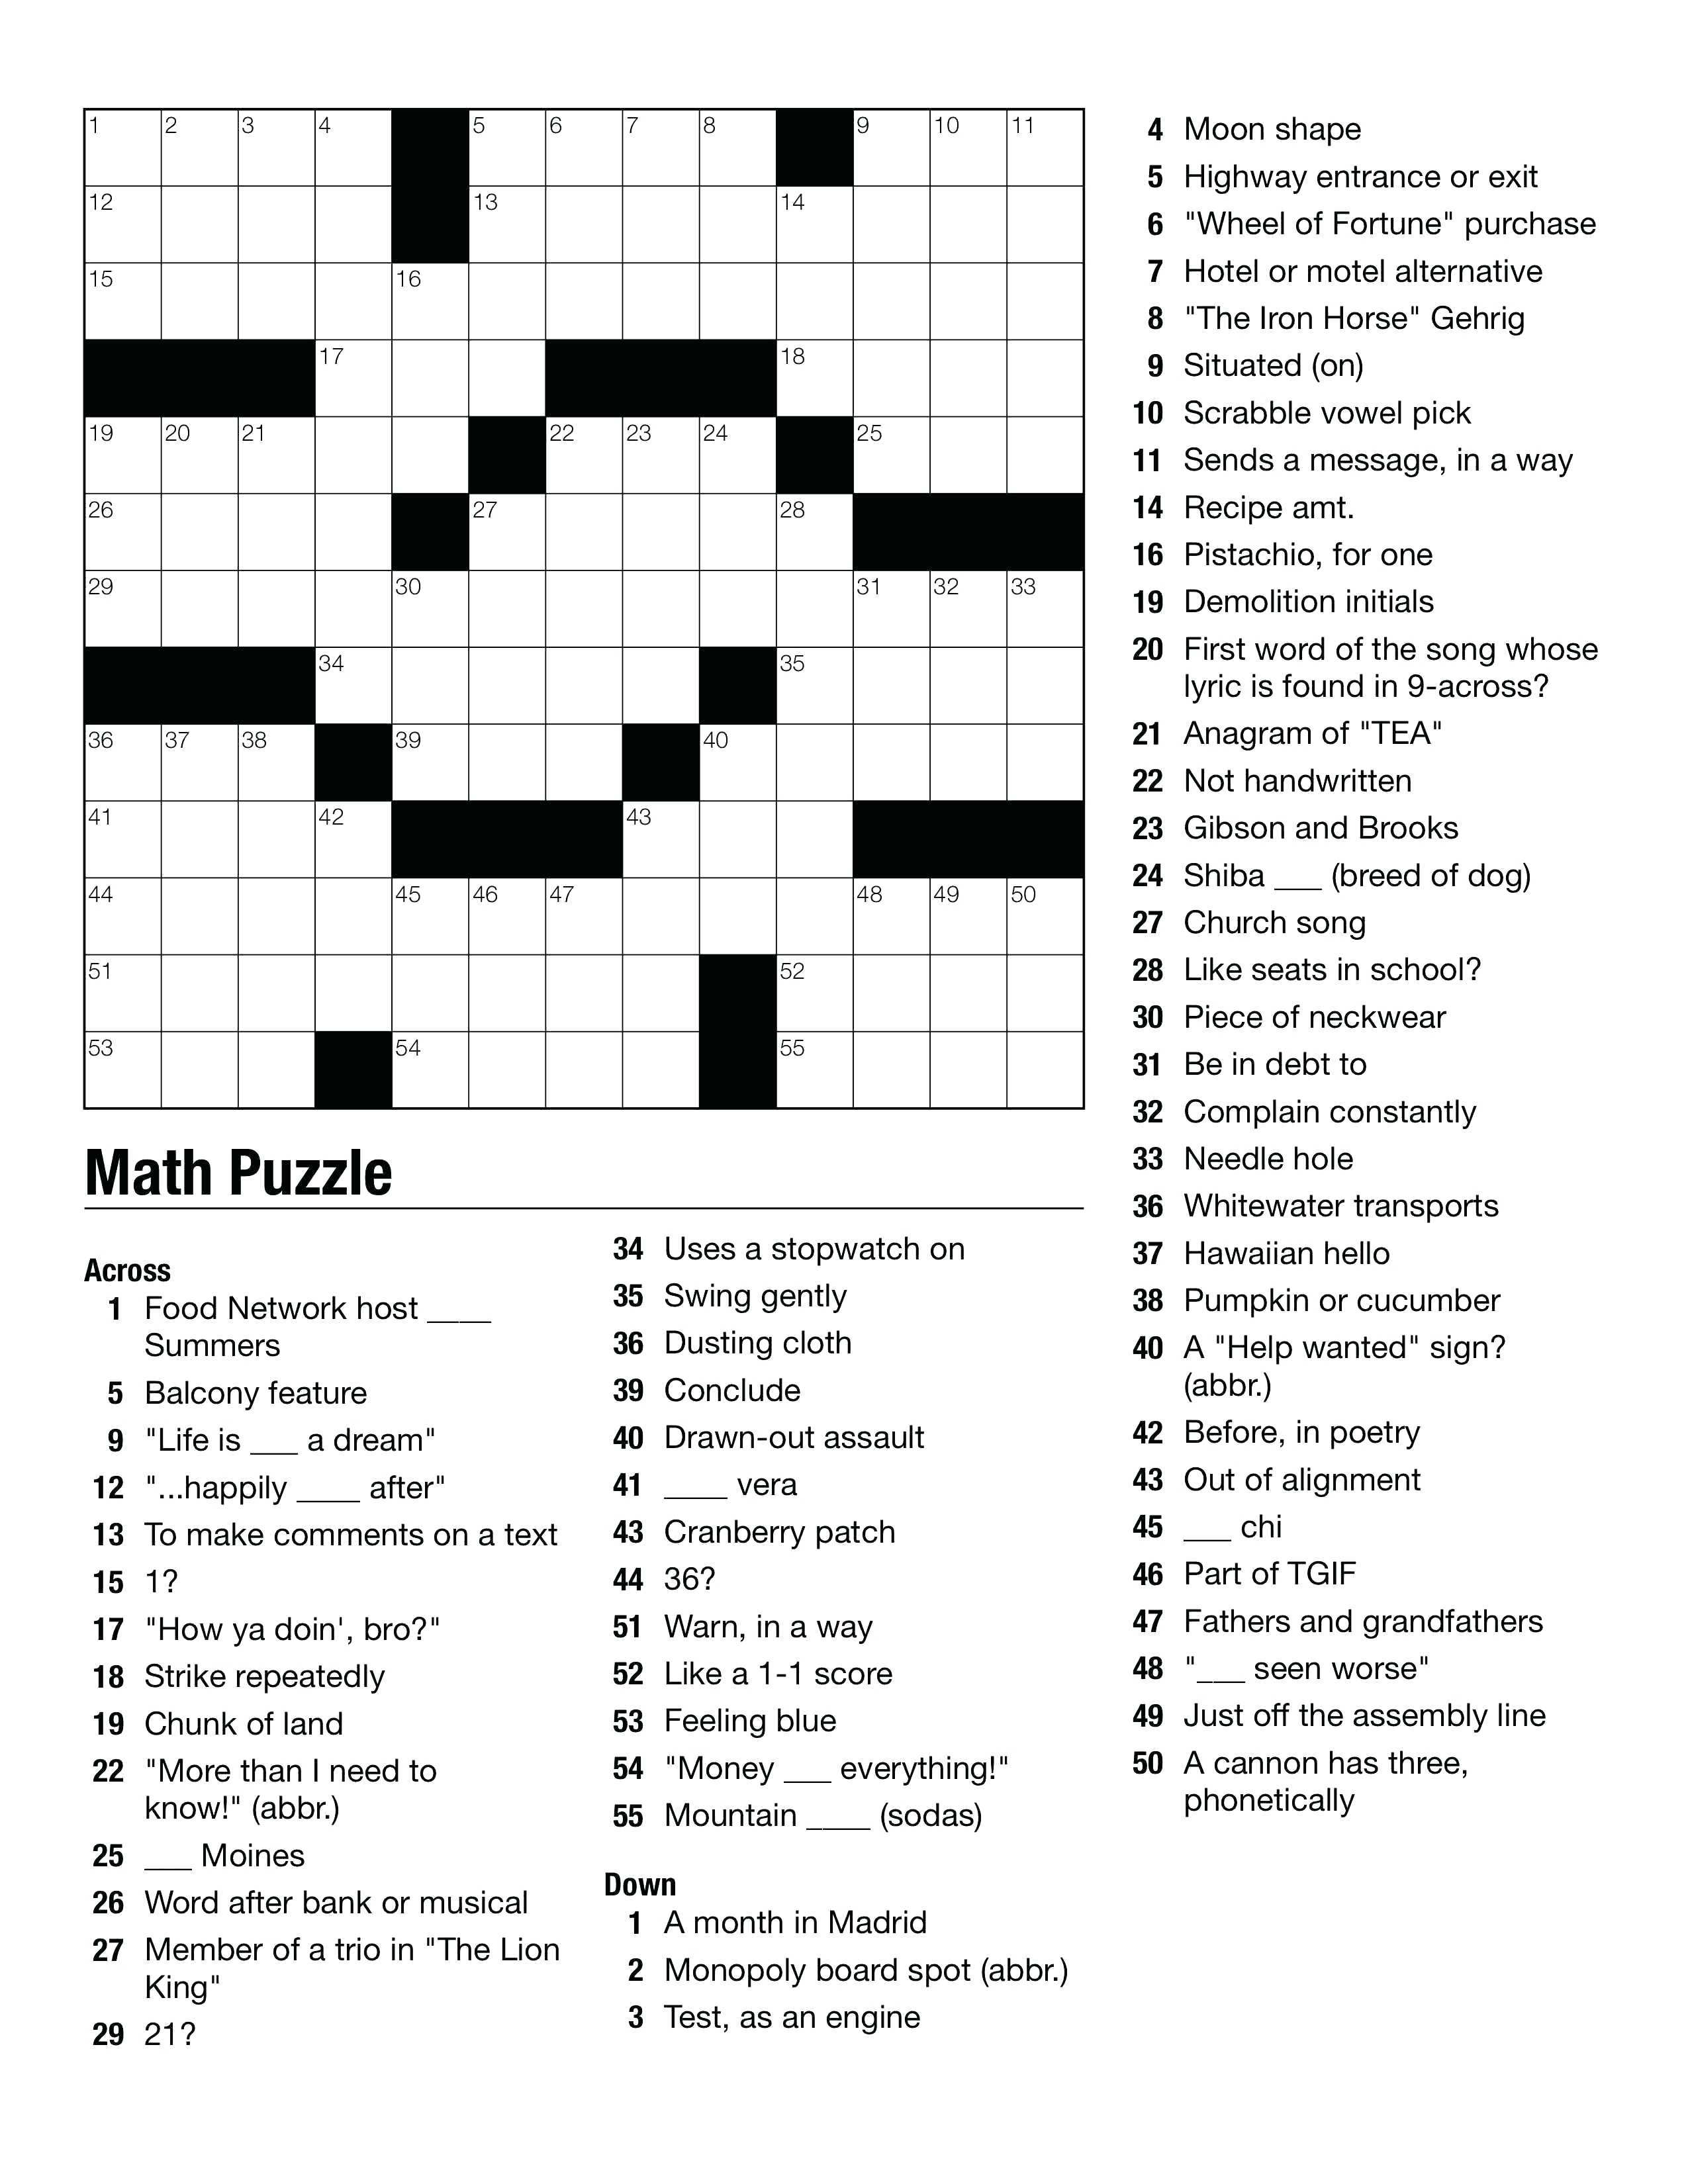 Geometry Puzzles Math Geometry Puzzle First Day In Cooperative Base - Printable Crossword Puzzles High School